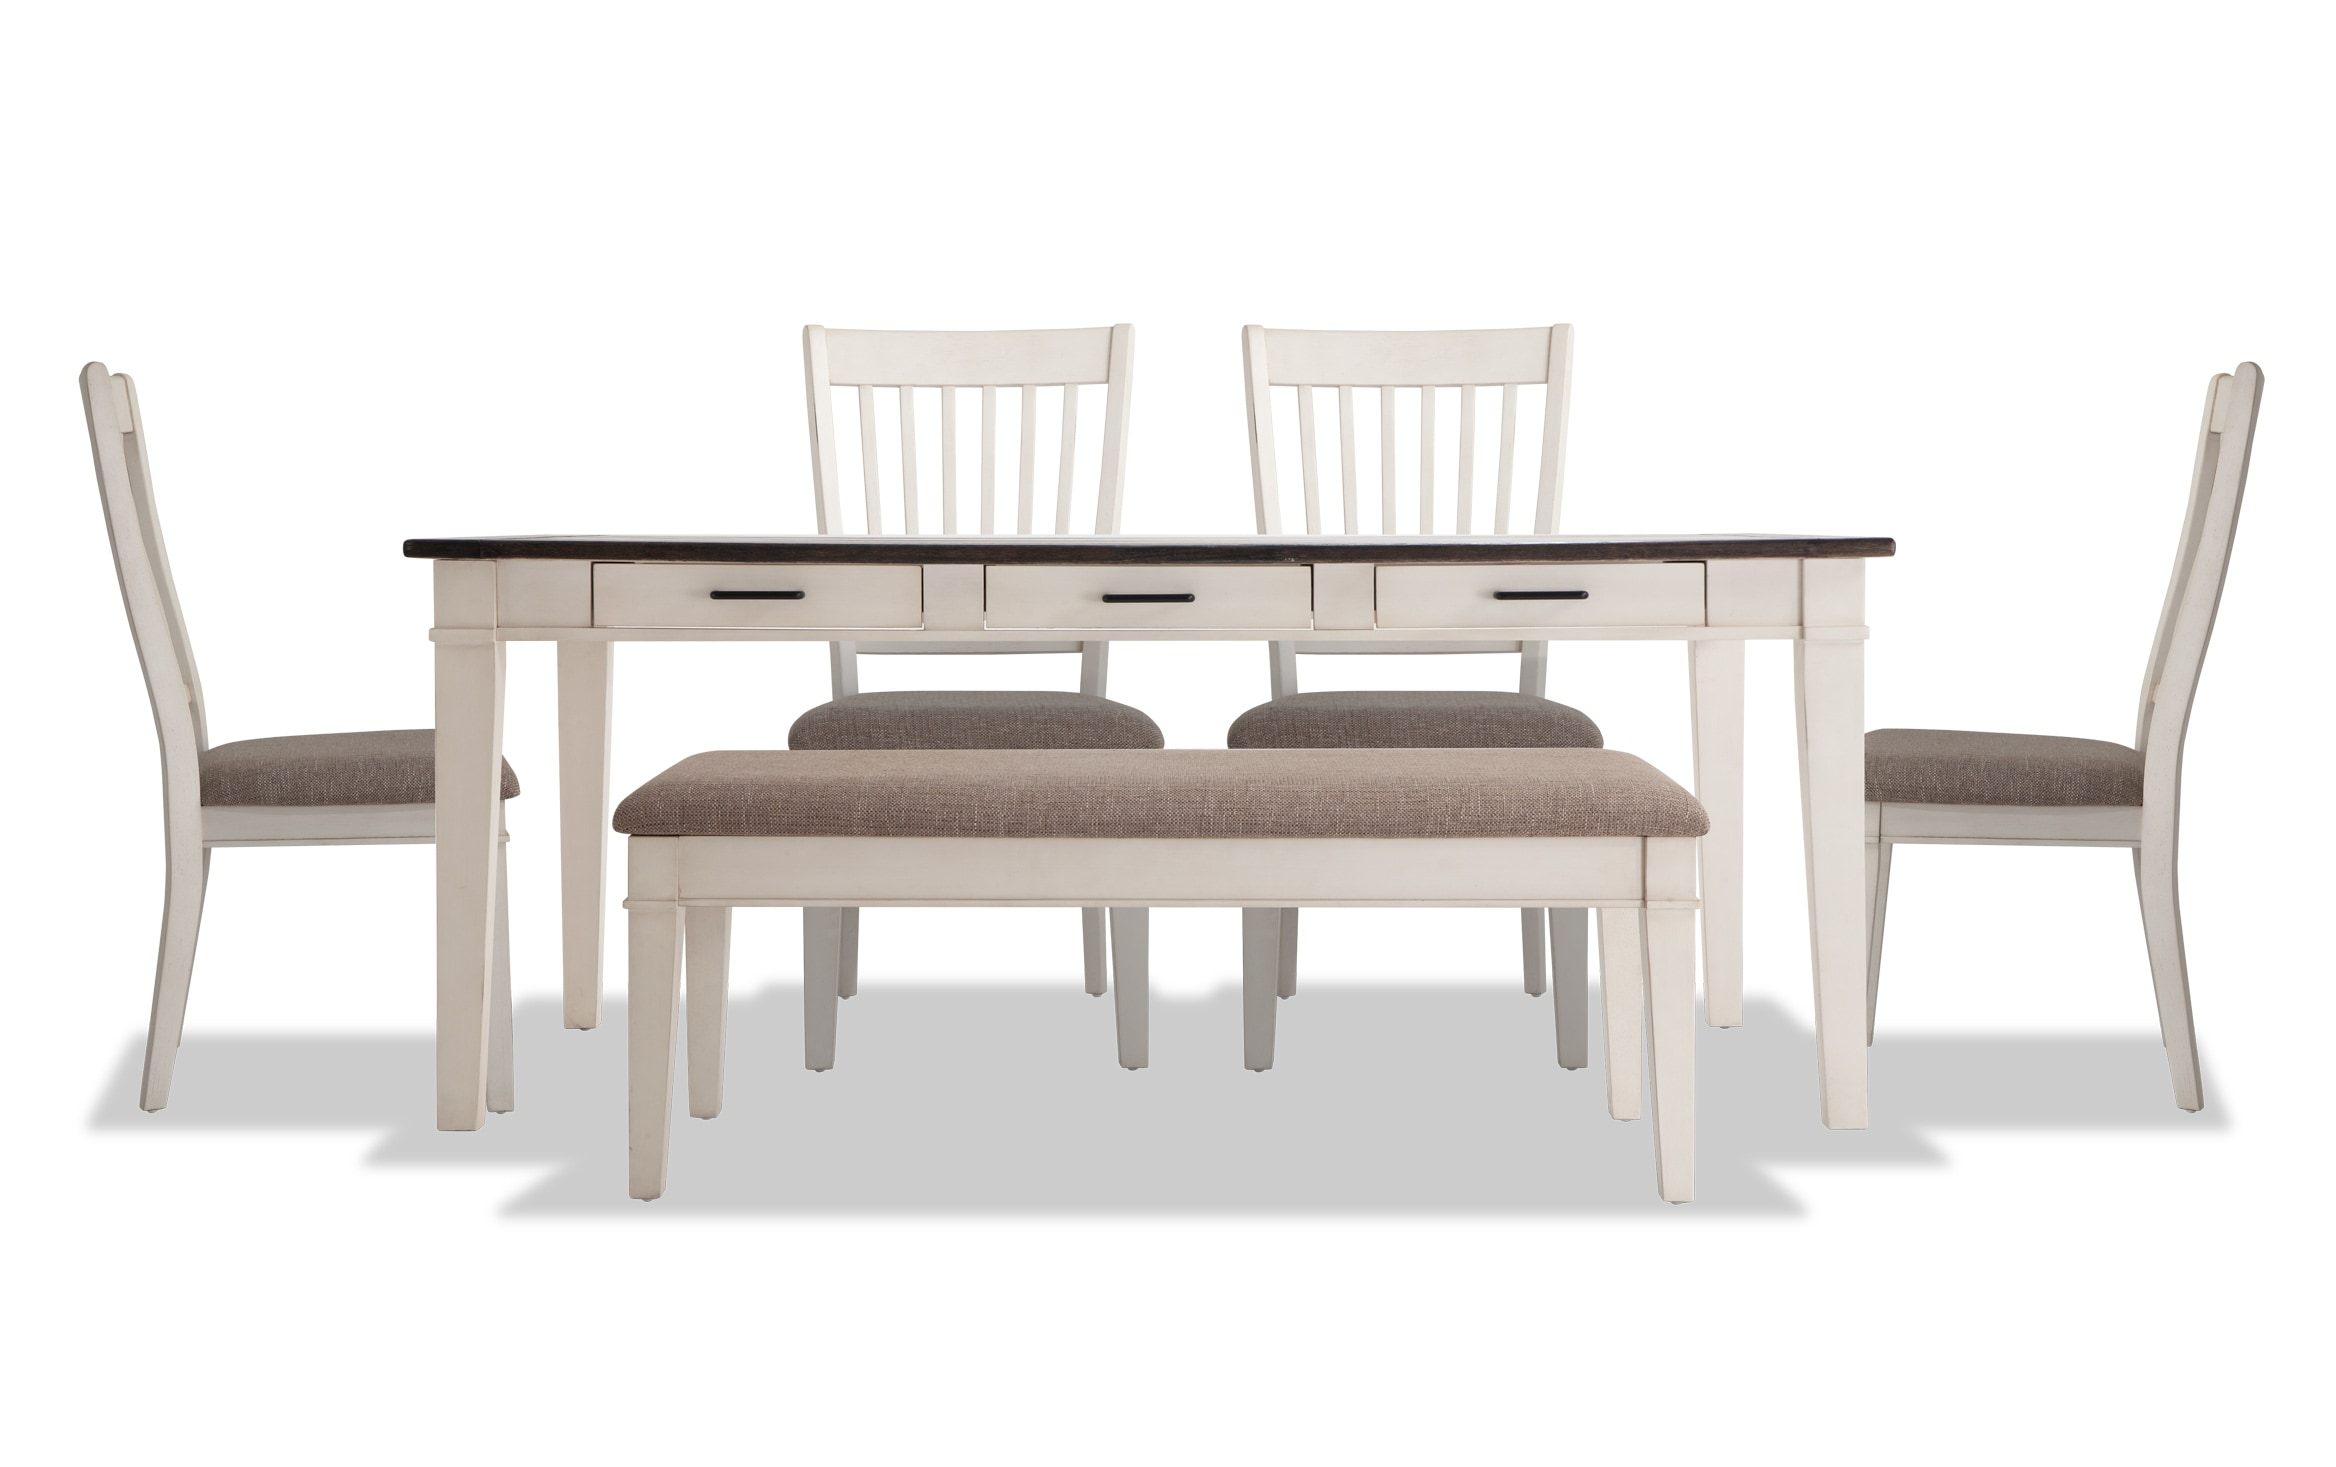 Montana 6 Piece Dining Set With Storage, Bobs Furniture Dining Room